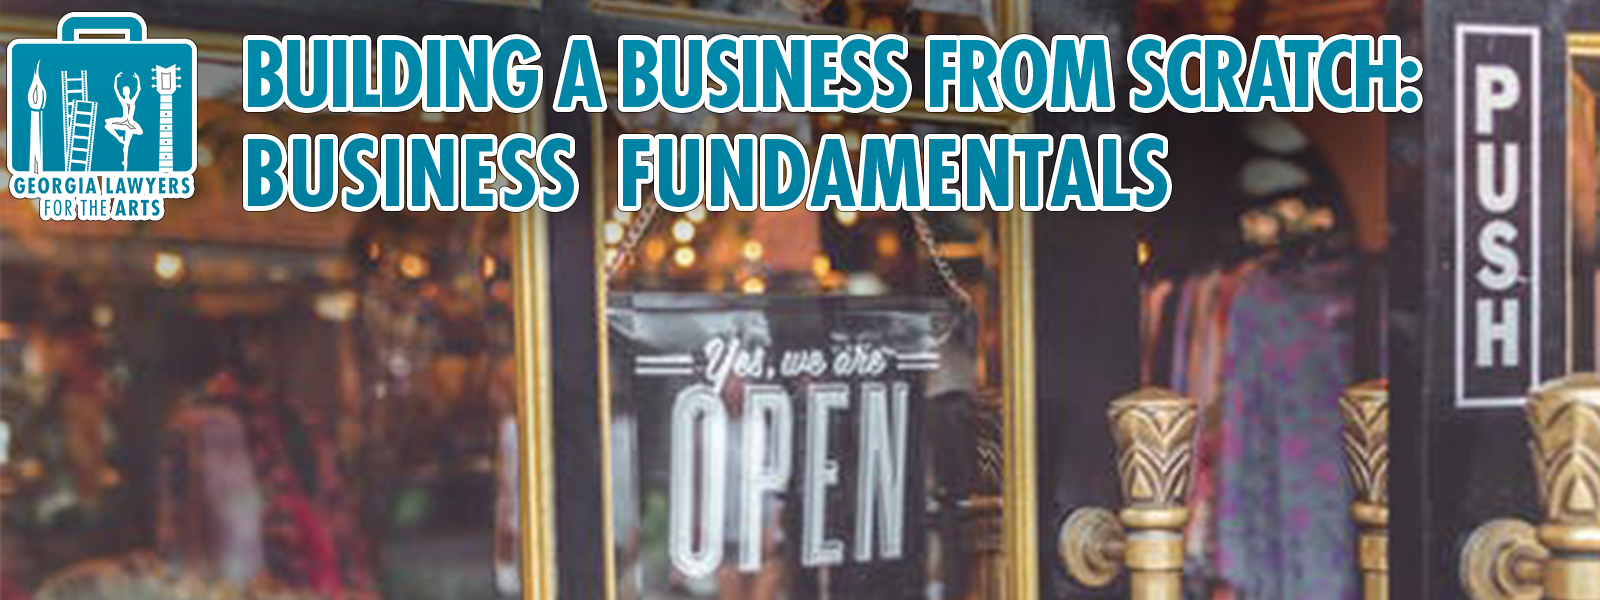 Building a Business from Scratch: Business Fundamentals